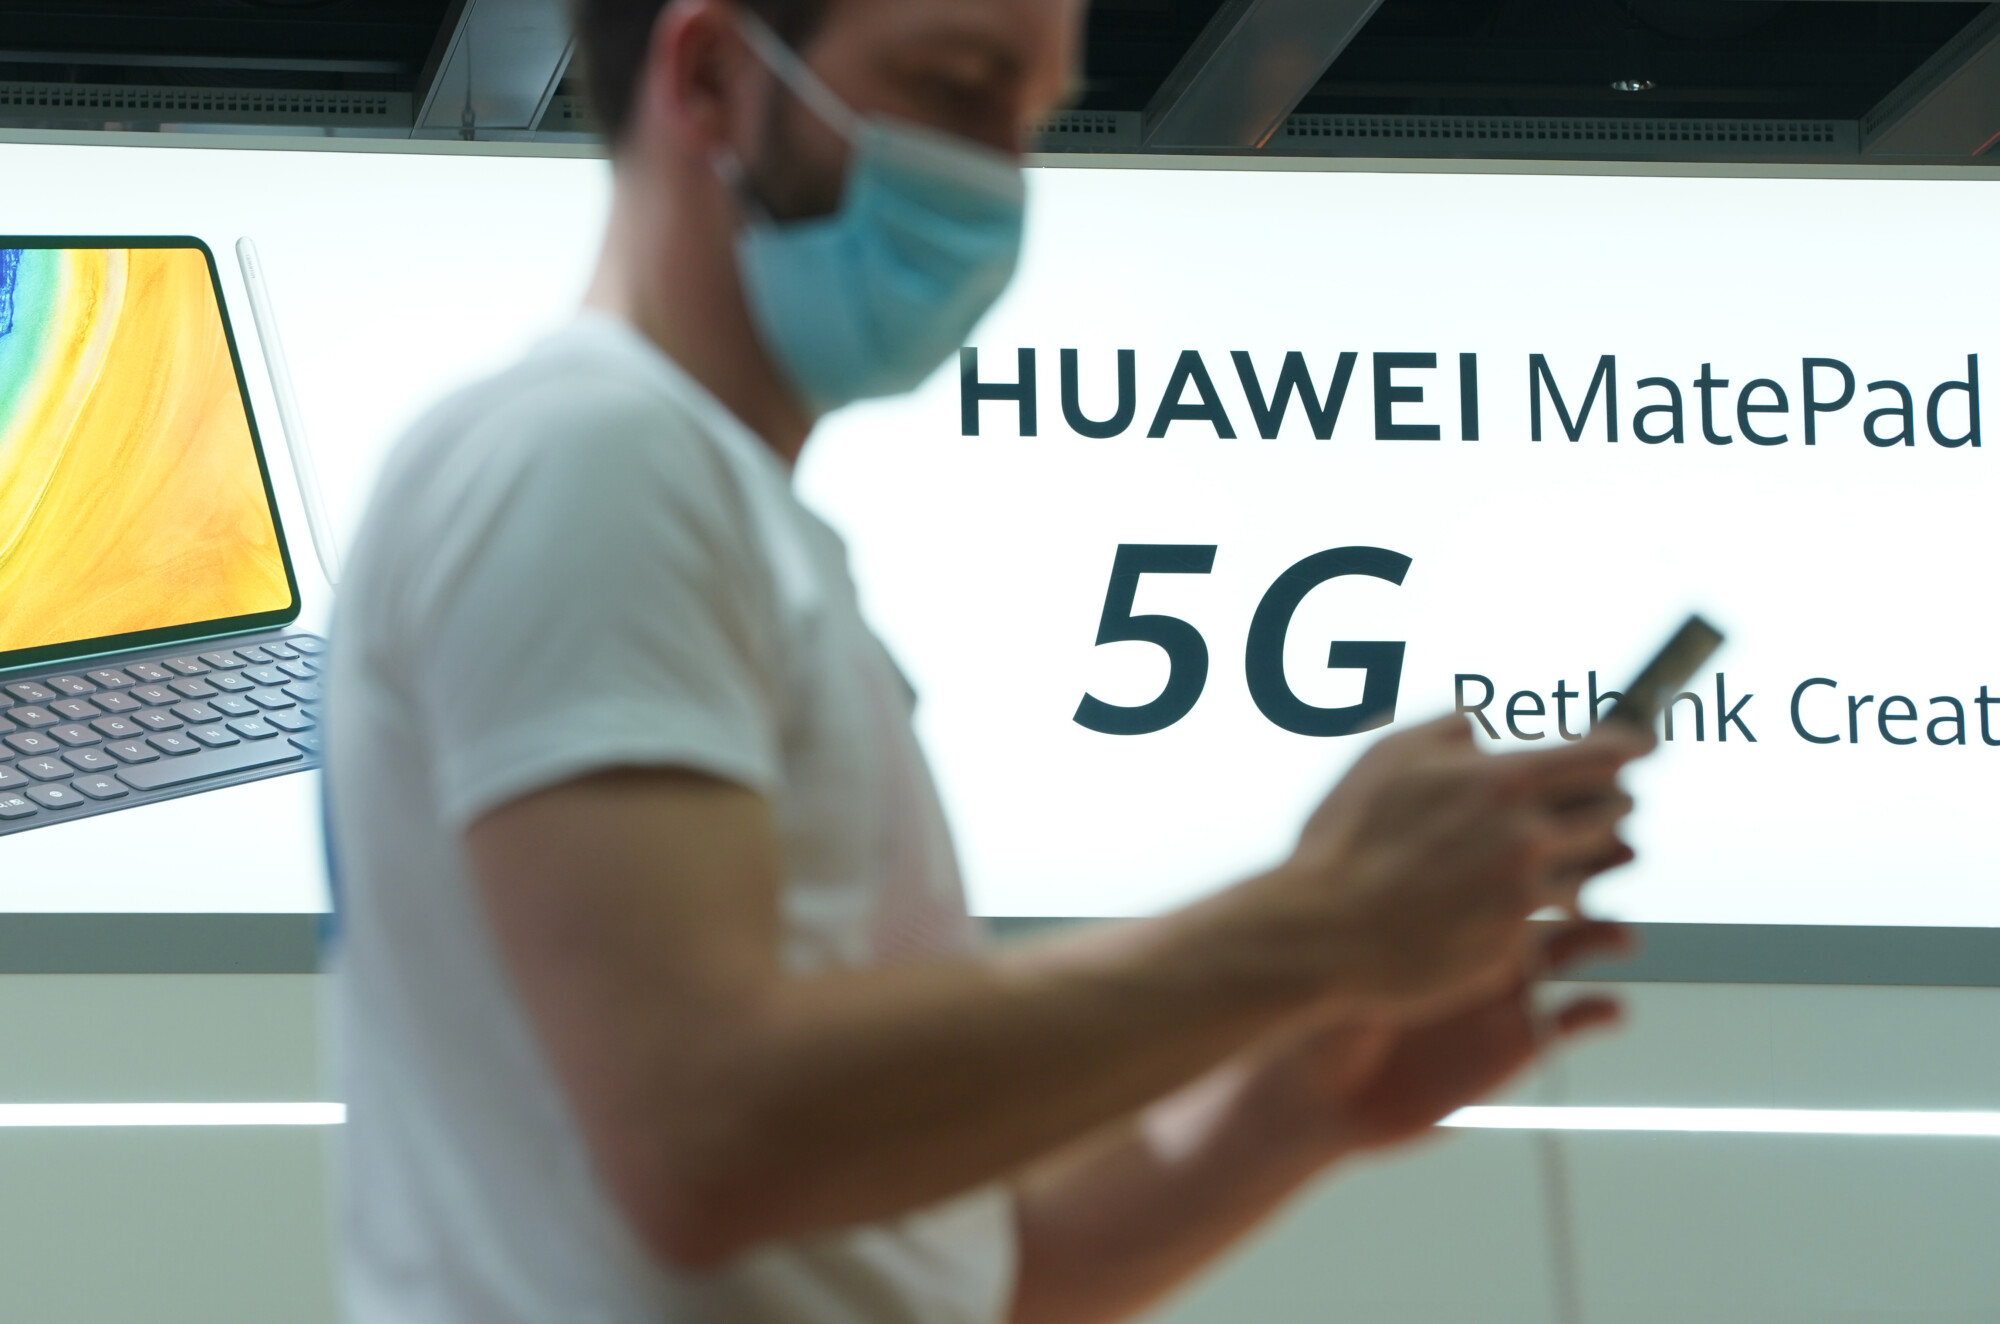 Clean Network Expands, Purging Huawei From 5G